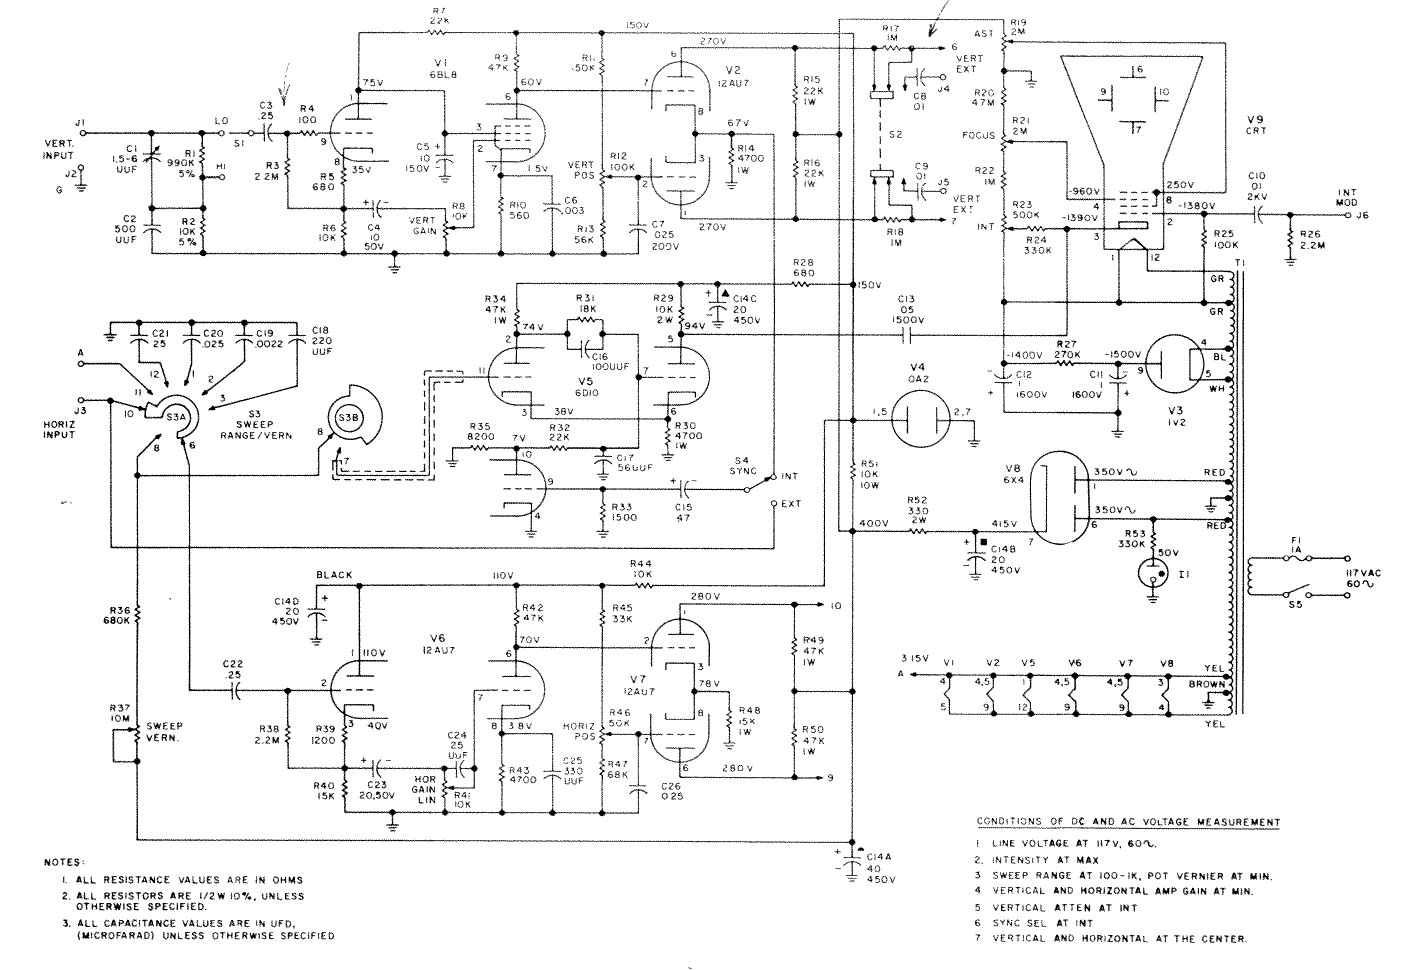 Tens Machine Schematic as well 9 Channels Sensor Switch furthermore Esr Scope Schematic also 480v Welding Receptacle Wiring moreover Ltc2990 System Monitoring Ic. on octopus curve tracer circuit diagram